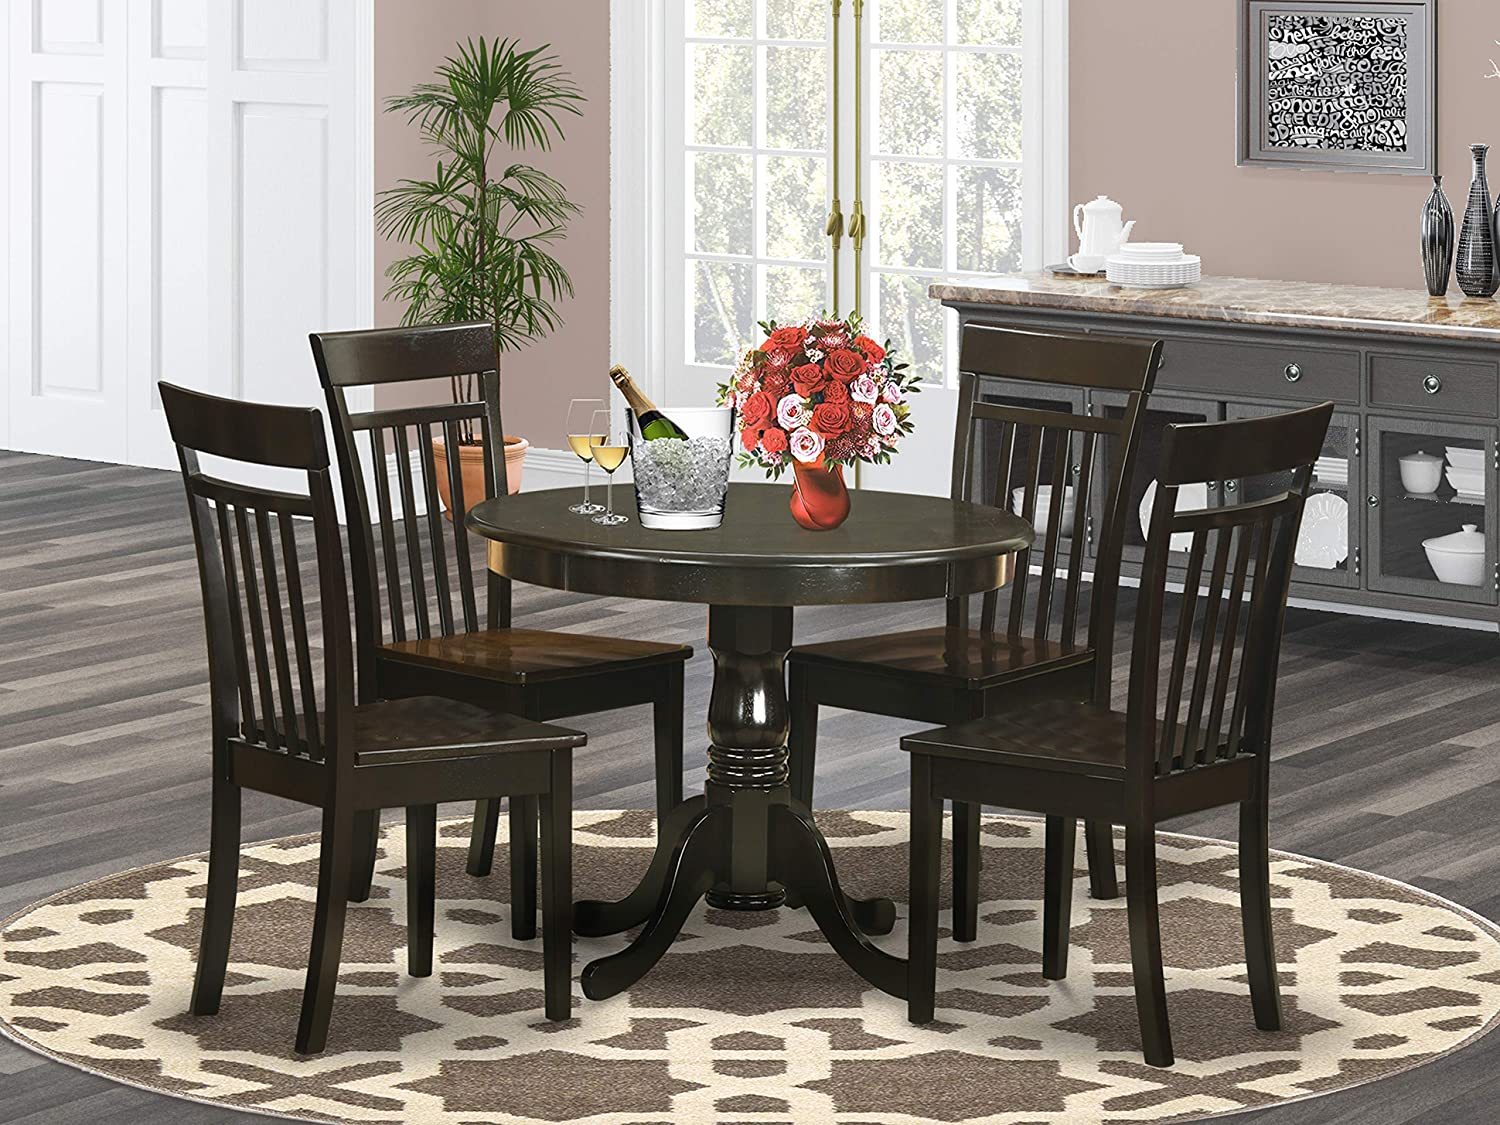 East West Furniture Kitchen Table Set- 4 Great dining room chairs - A Gorgeous Dinner Table- Wooden Seat and Cappuccino Wood Kitchen Table